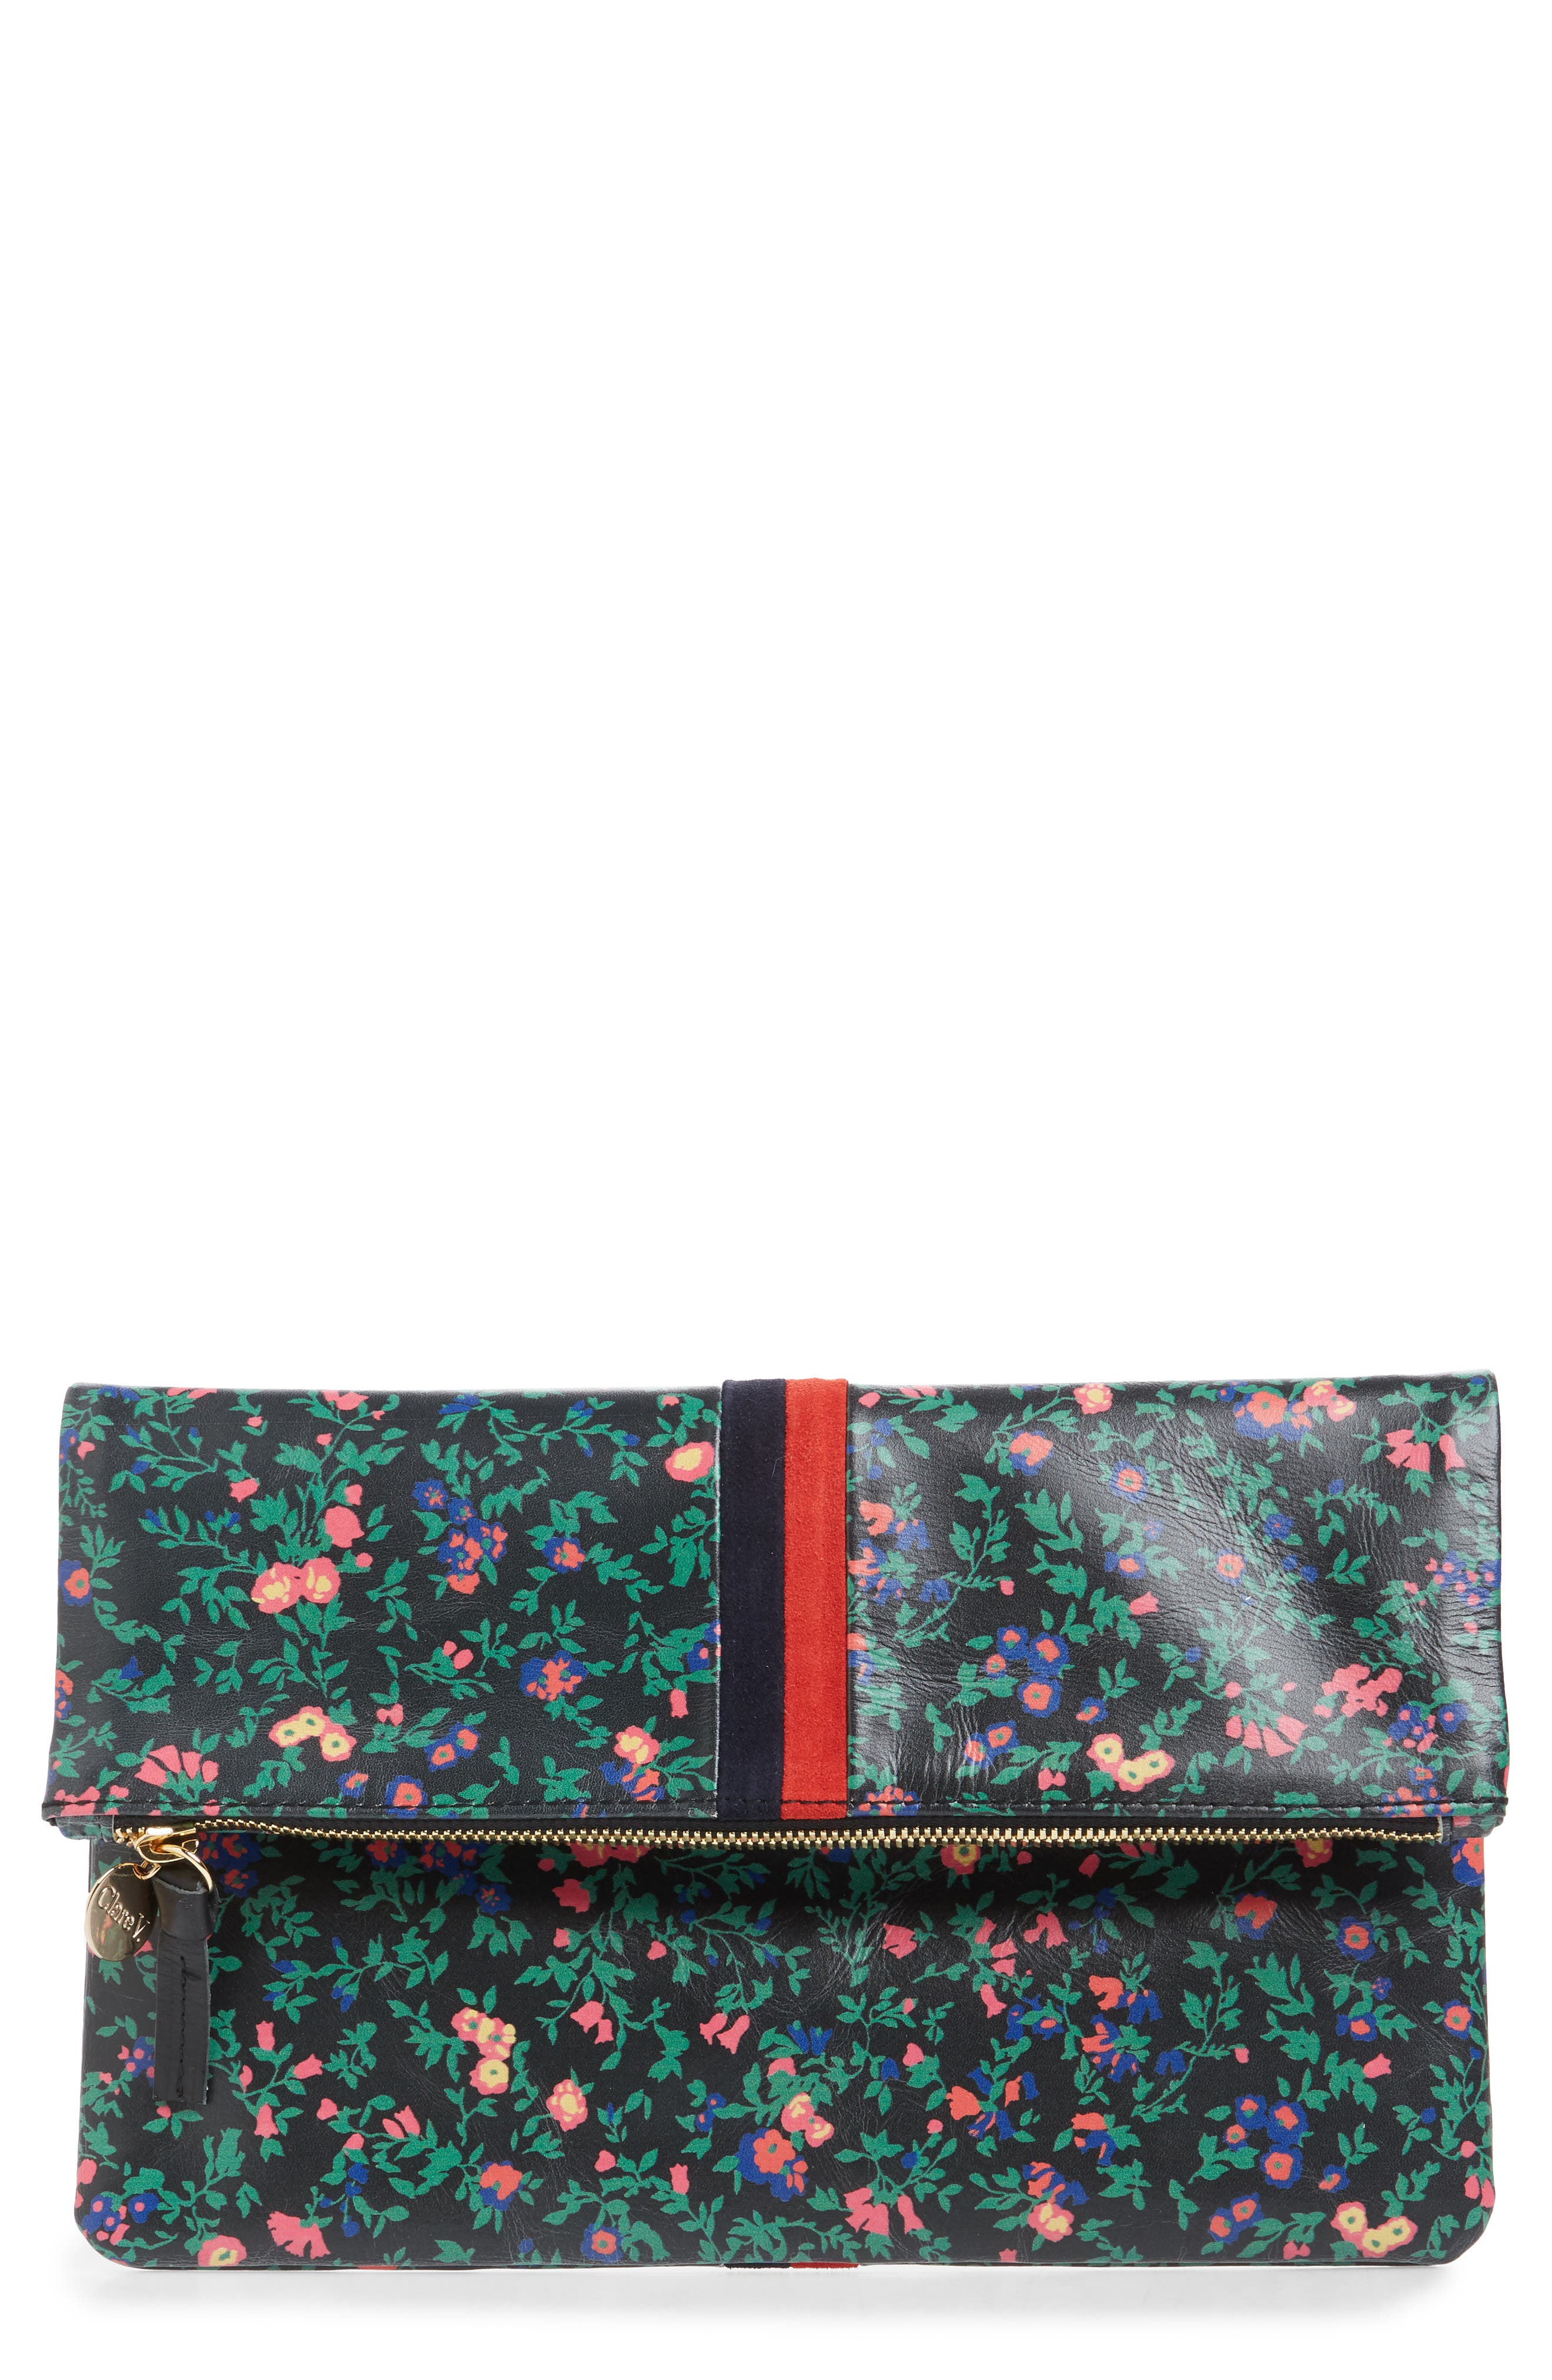 FOLDOVER DITSY FLORAL LEATHER CLUTCH - BLACK